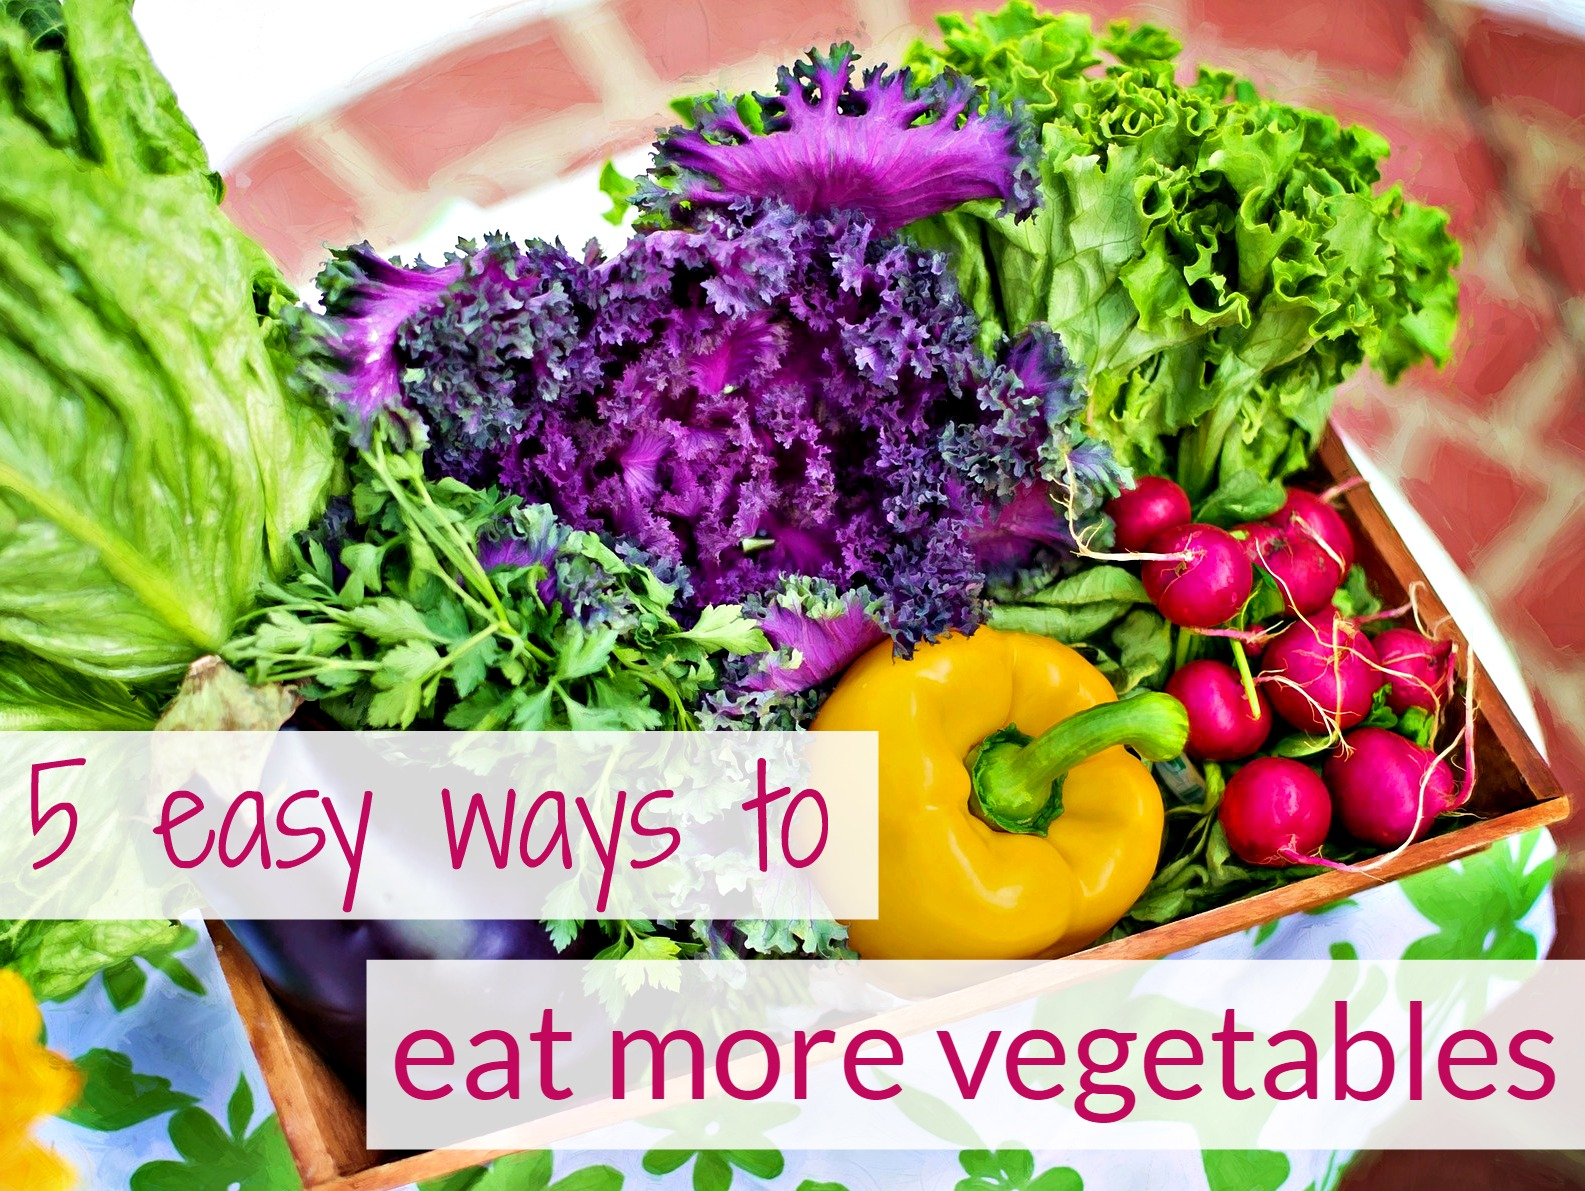 5 easy ways to eat more vegetables